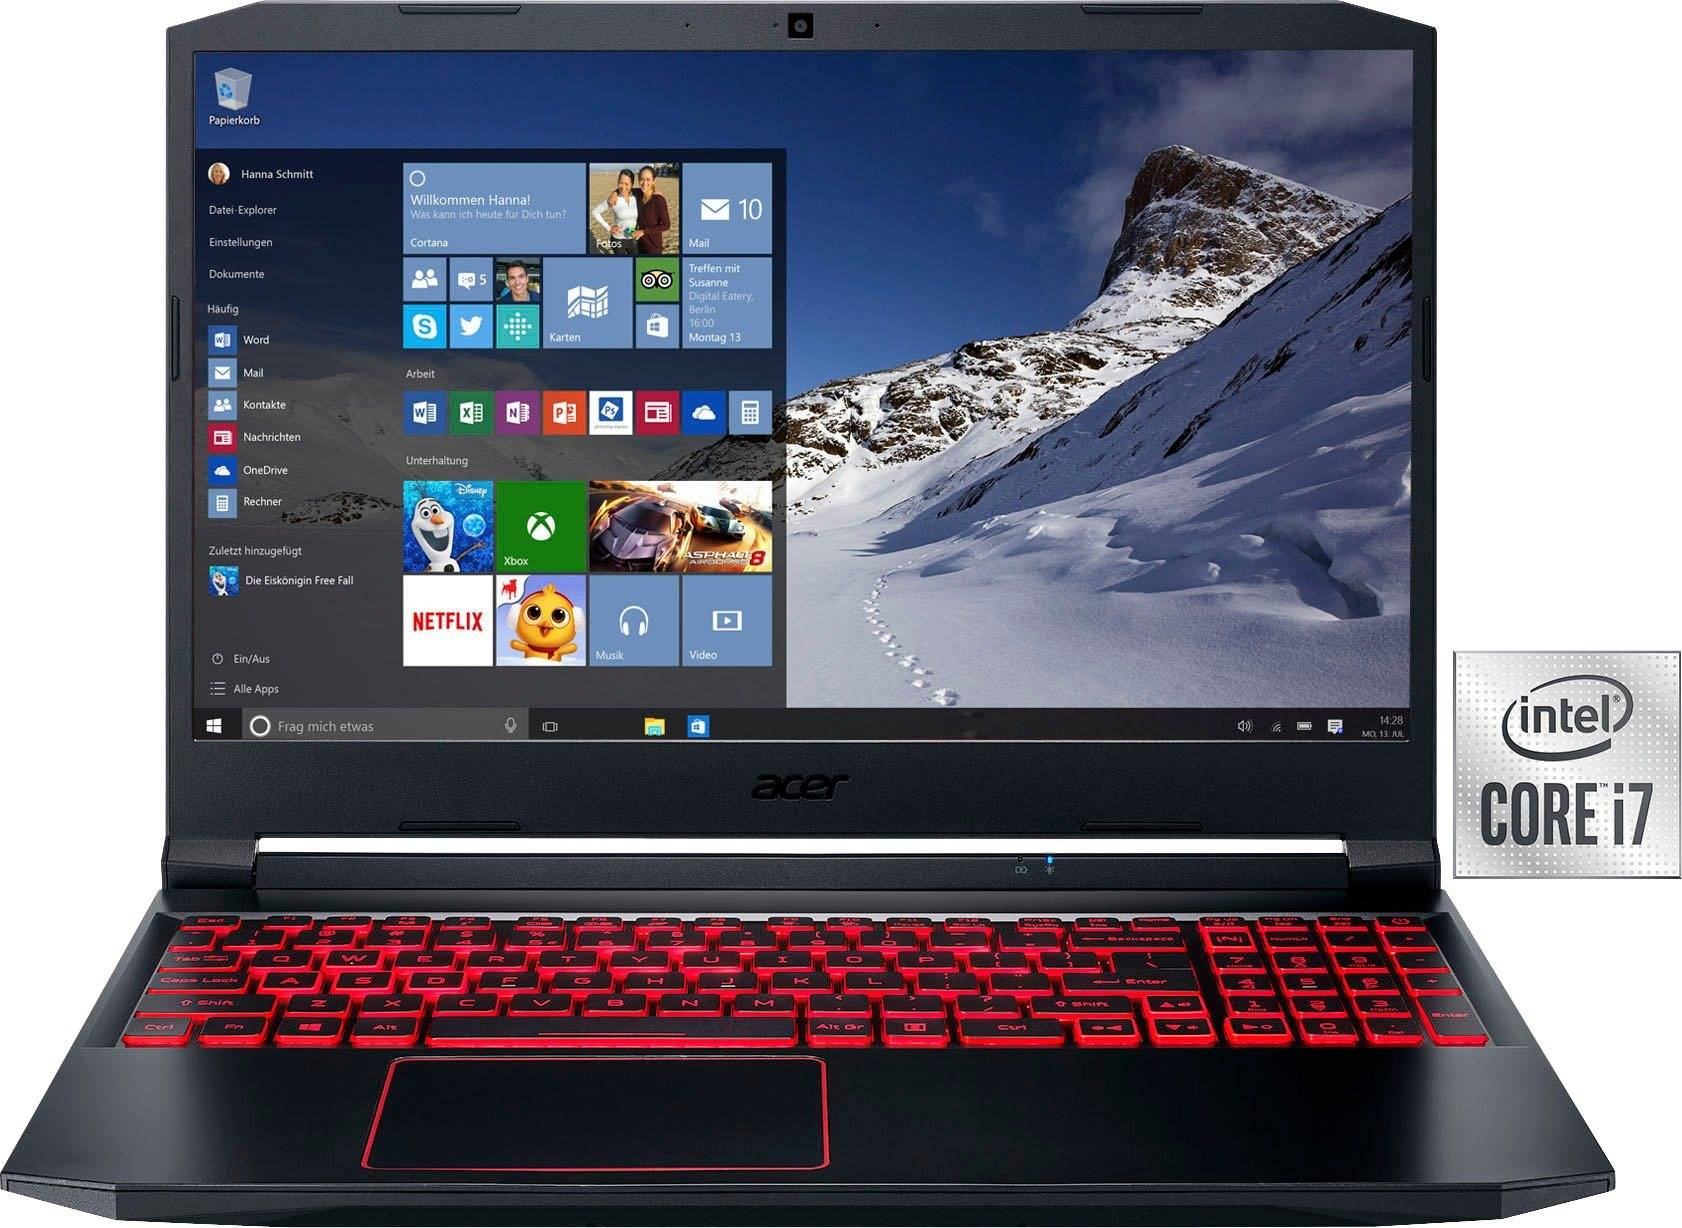 Acer Nitro 5 Gaming-Notebook (39,62 cm/15,6 Zoll, Intel Core i7, GeForce GTX 1650 Ti, - GB HDD, 1000 GB SSD, Gaming Laptop inkl. Office-Anwendersoftware Microsoft 365 Single im Wert von 69 Euro)